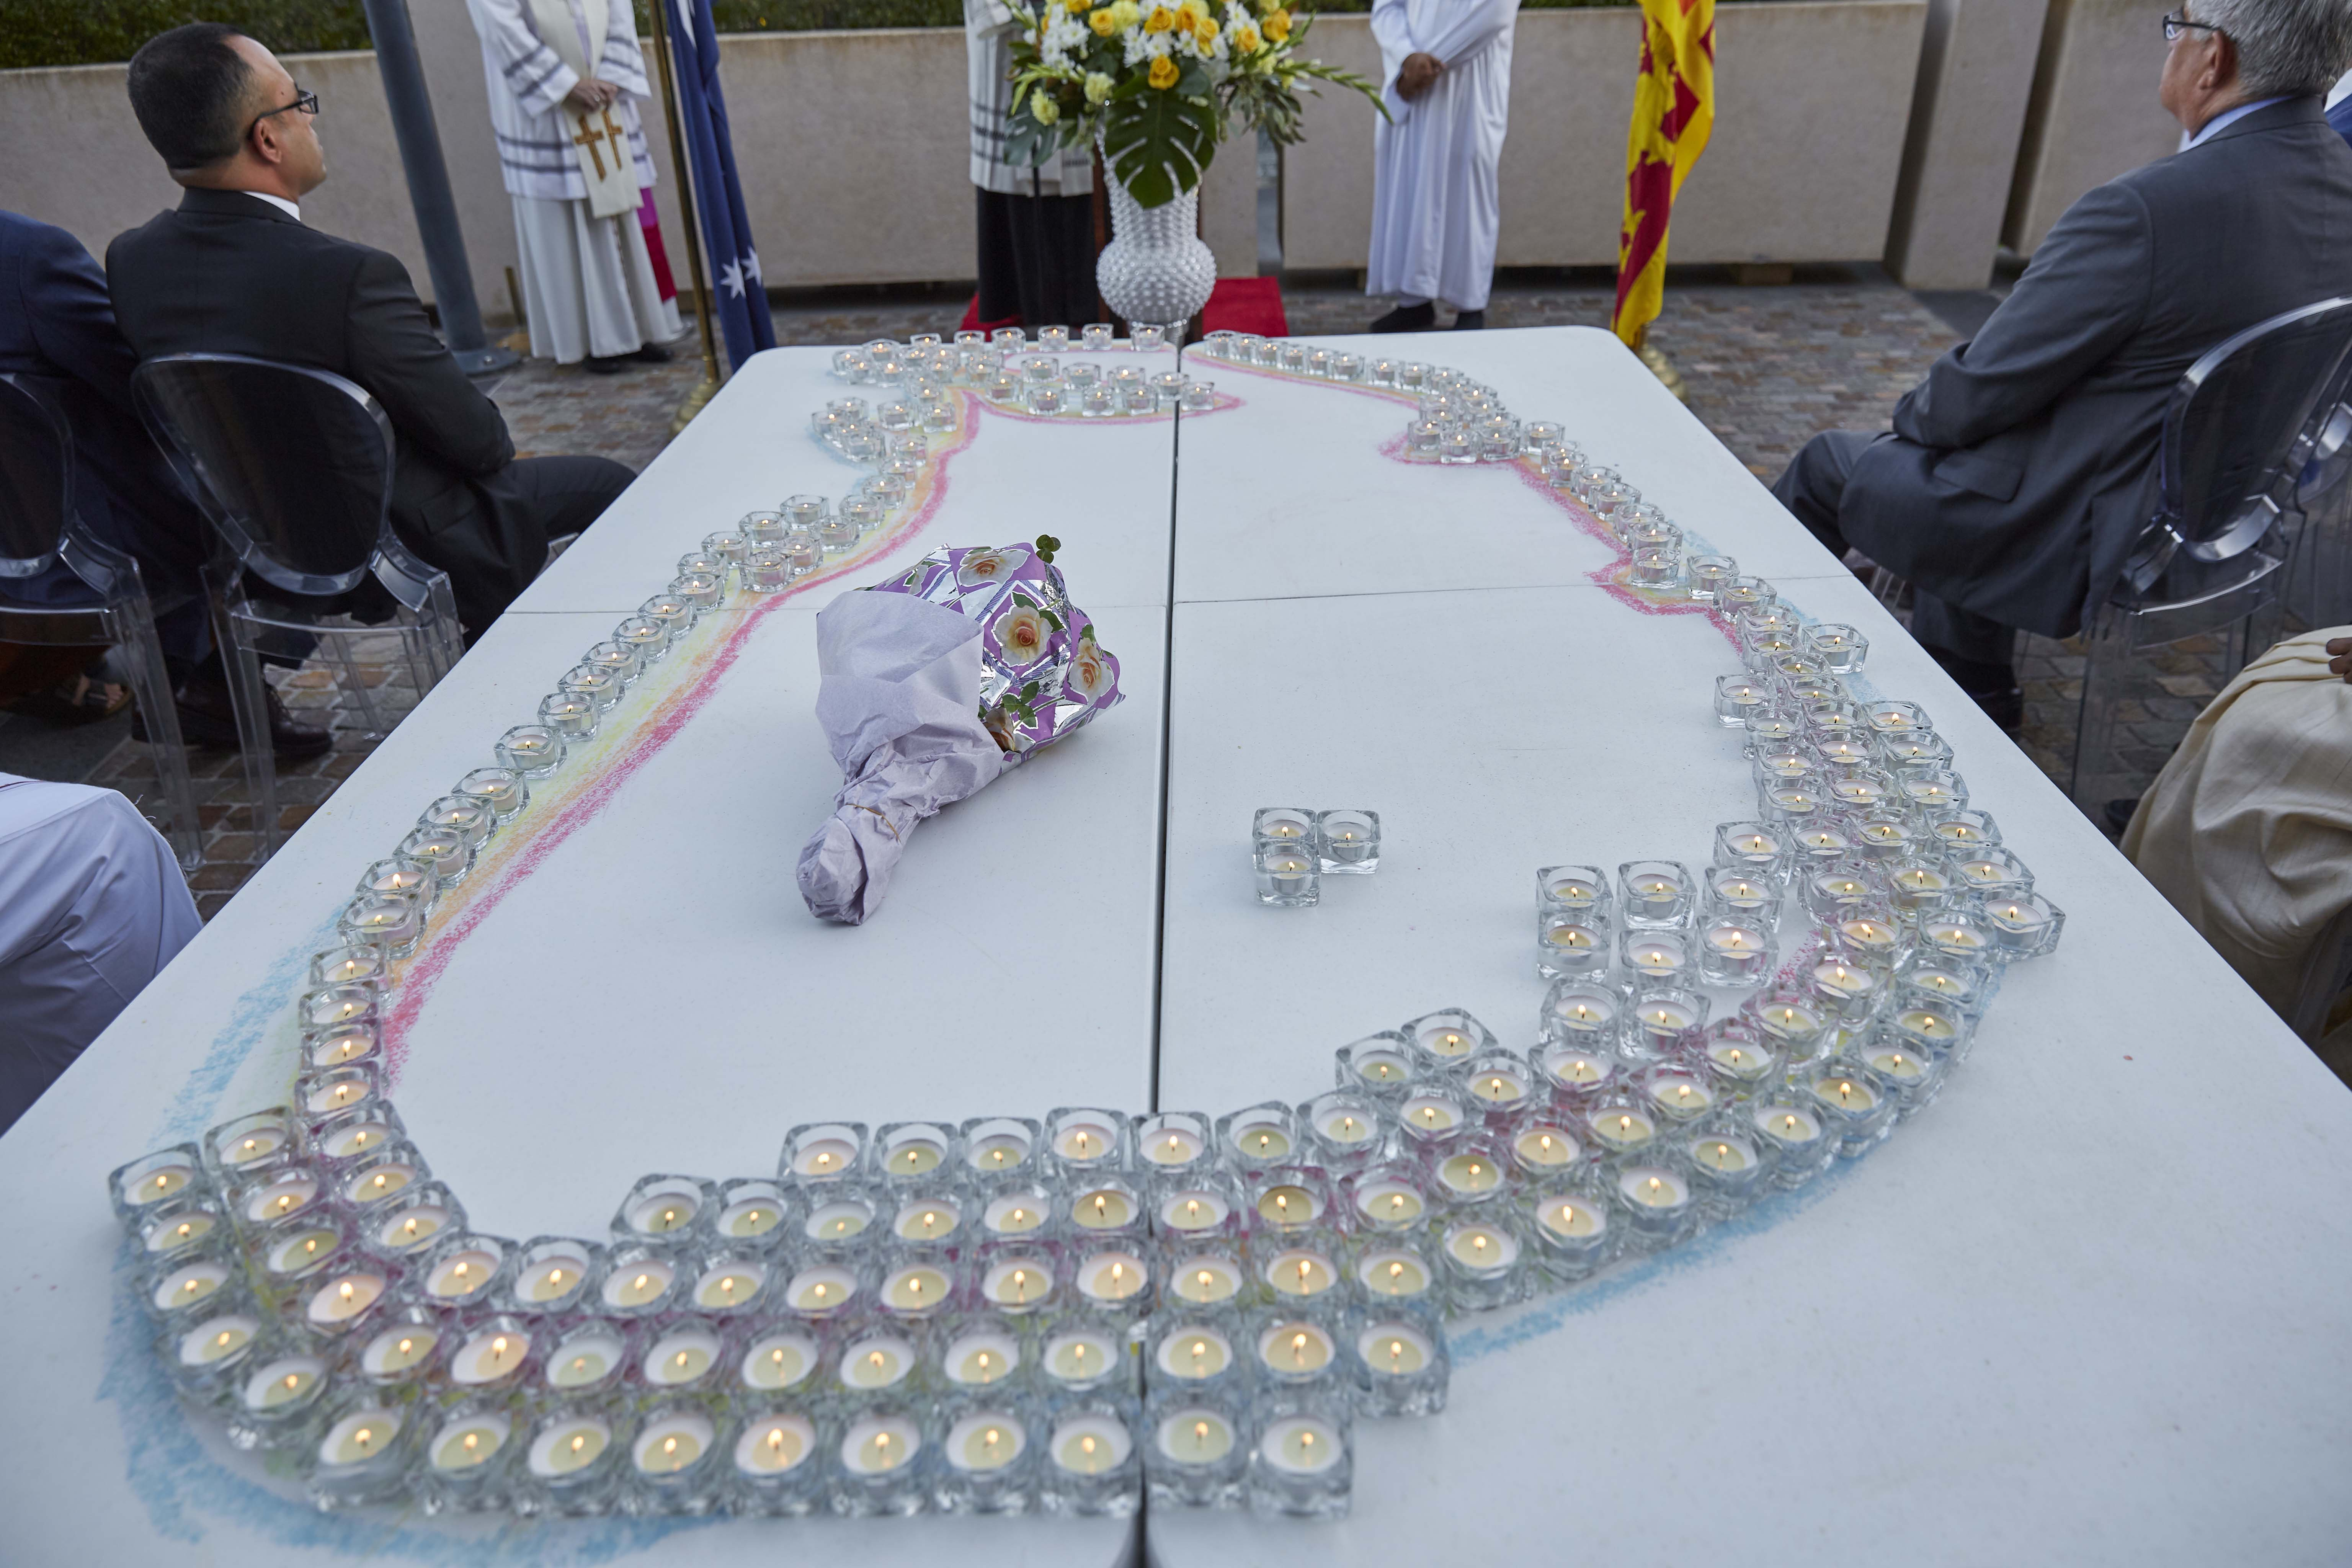 Candles were placed on a table to make the map of Sri Lanka during the interfaith service. Photo: Ron Tan.